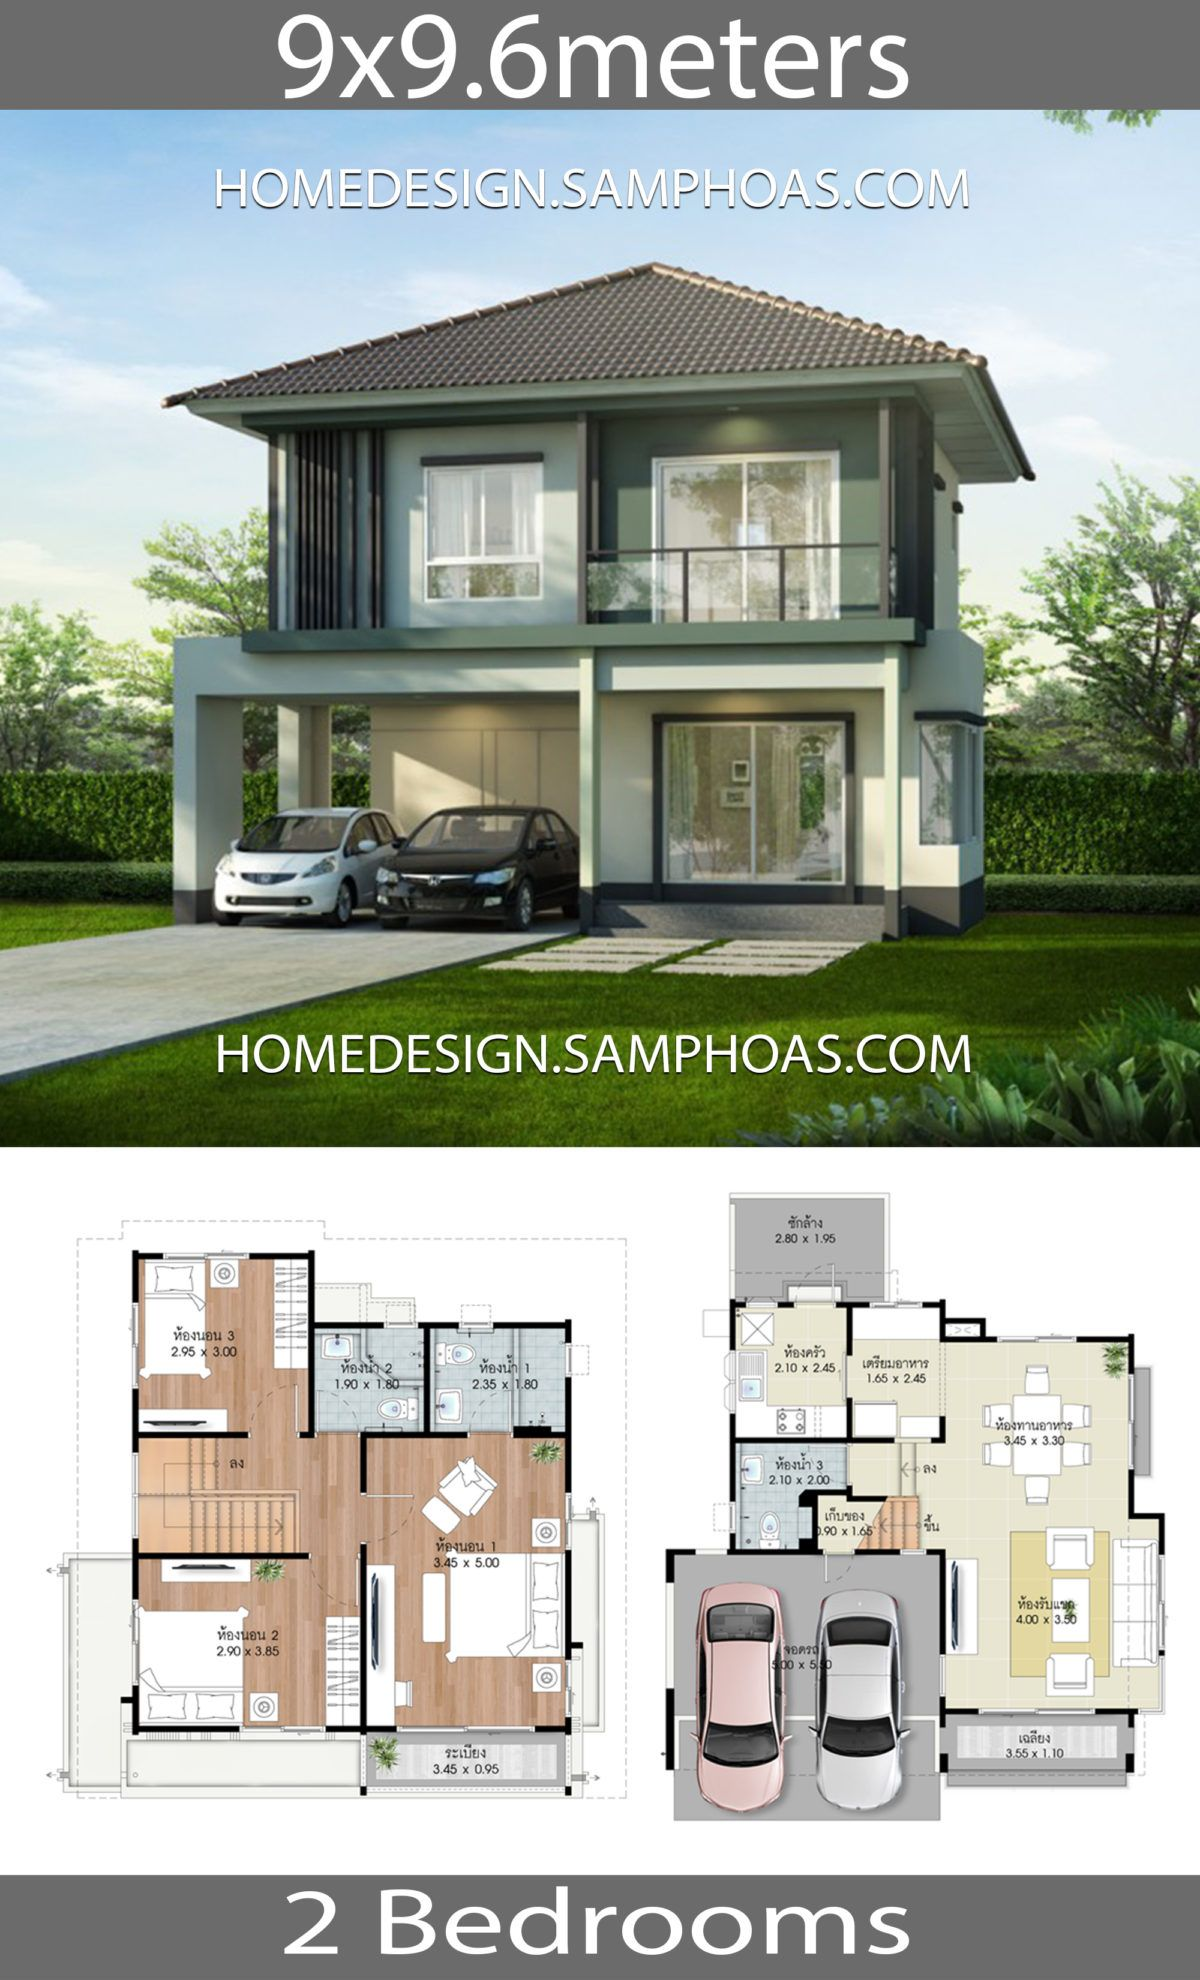 10 Beautiful House Plans You Will Love House Plans S Beautiful House Plans Home Design Plans House Plans